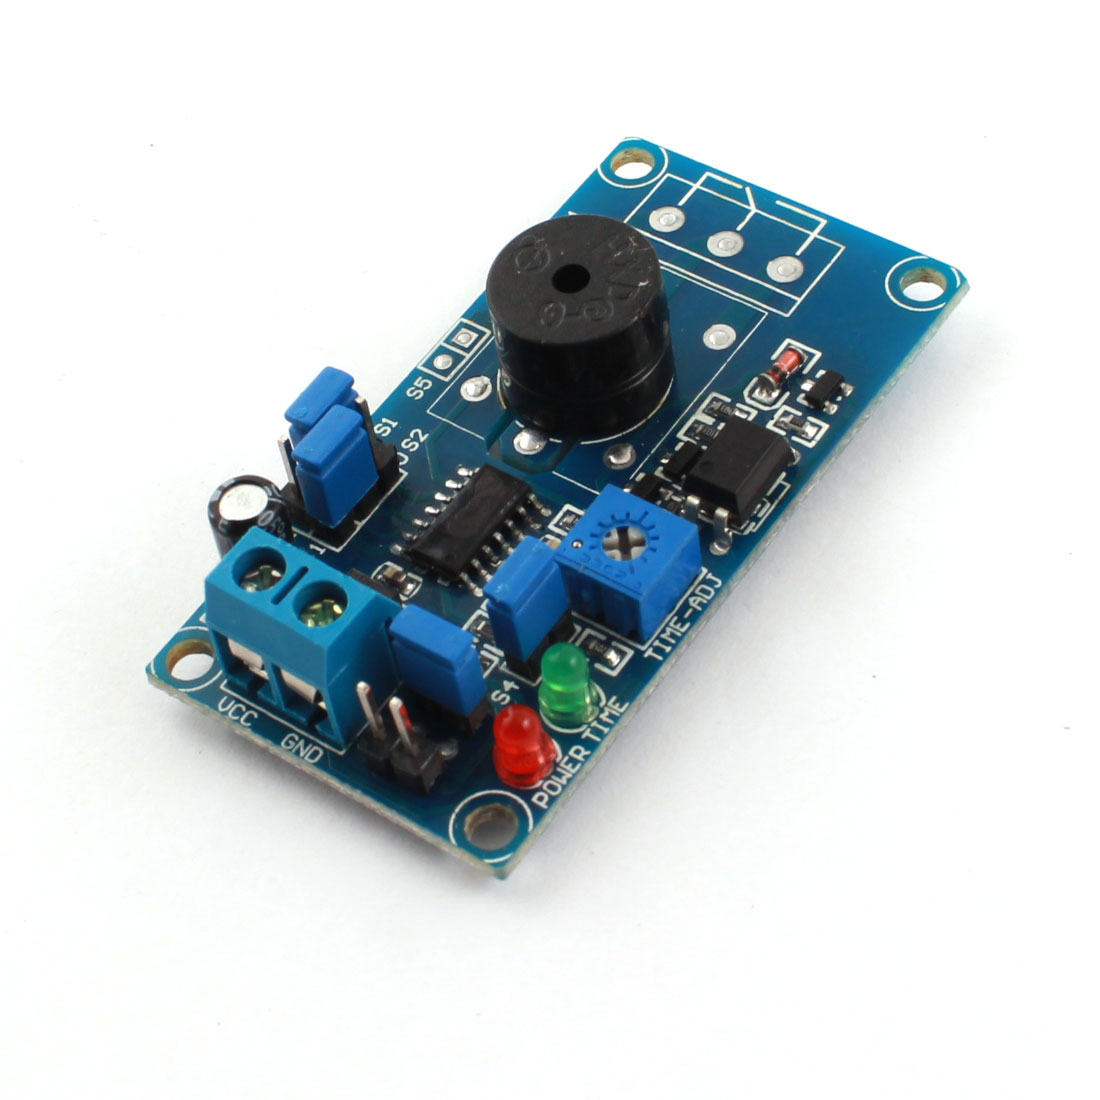 DC 5V High/Low Level Trigger 85dB Buzzer Alarm Time Delay Module FC-31